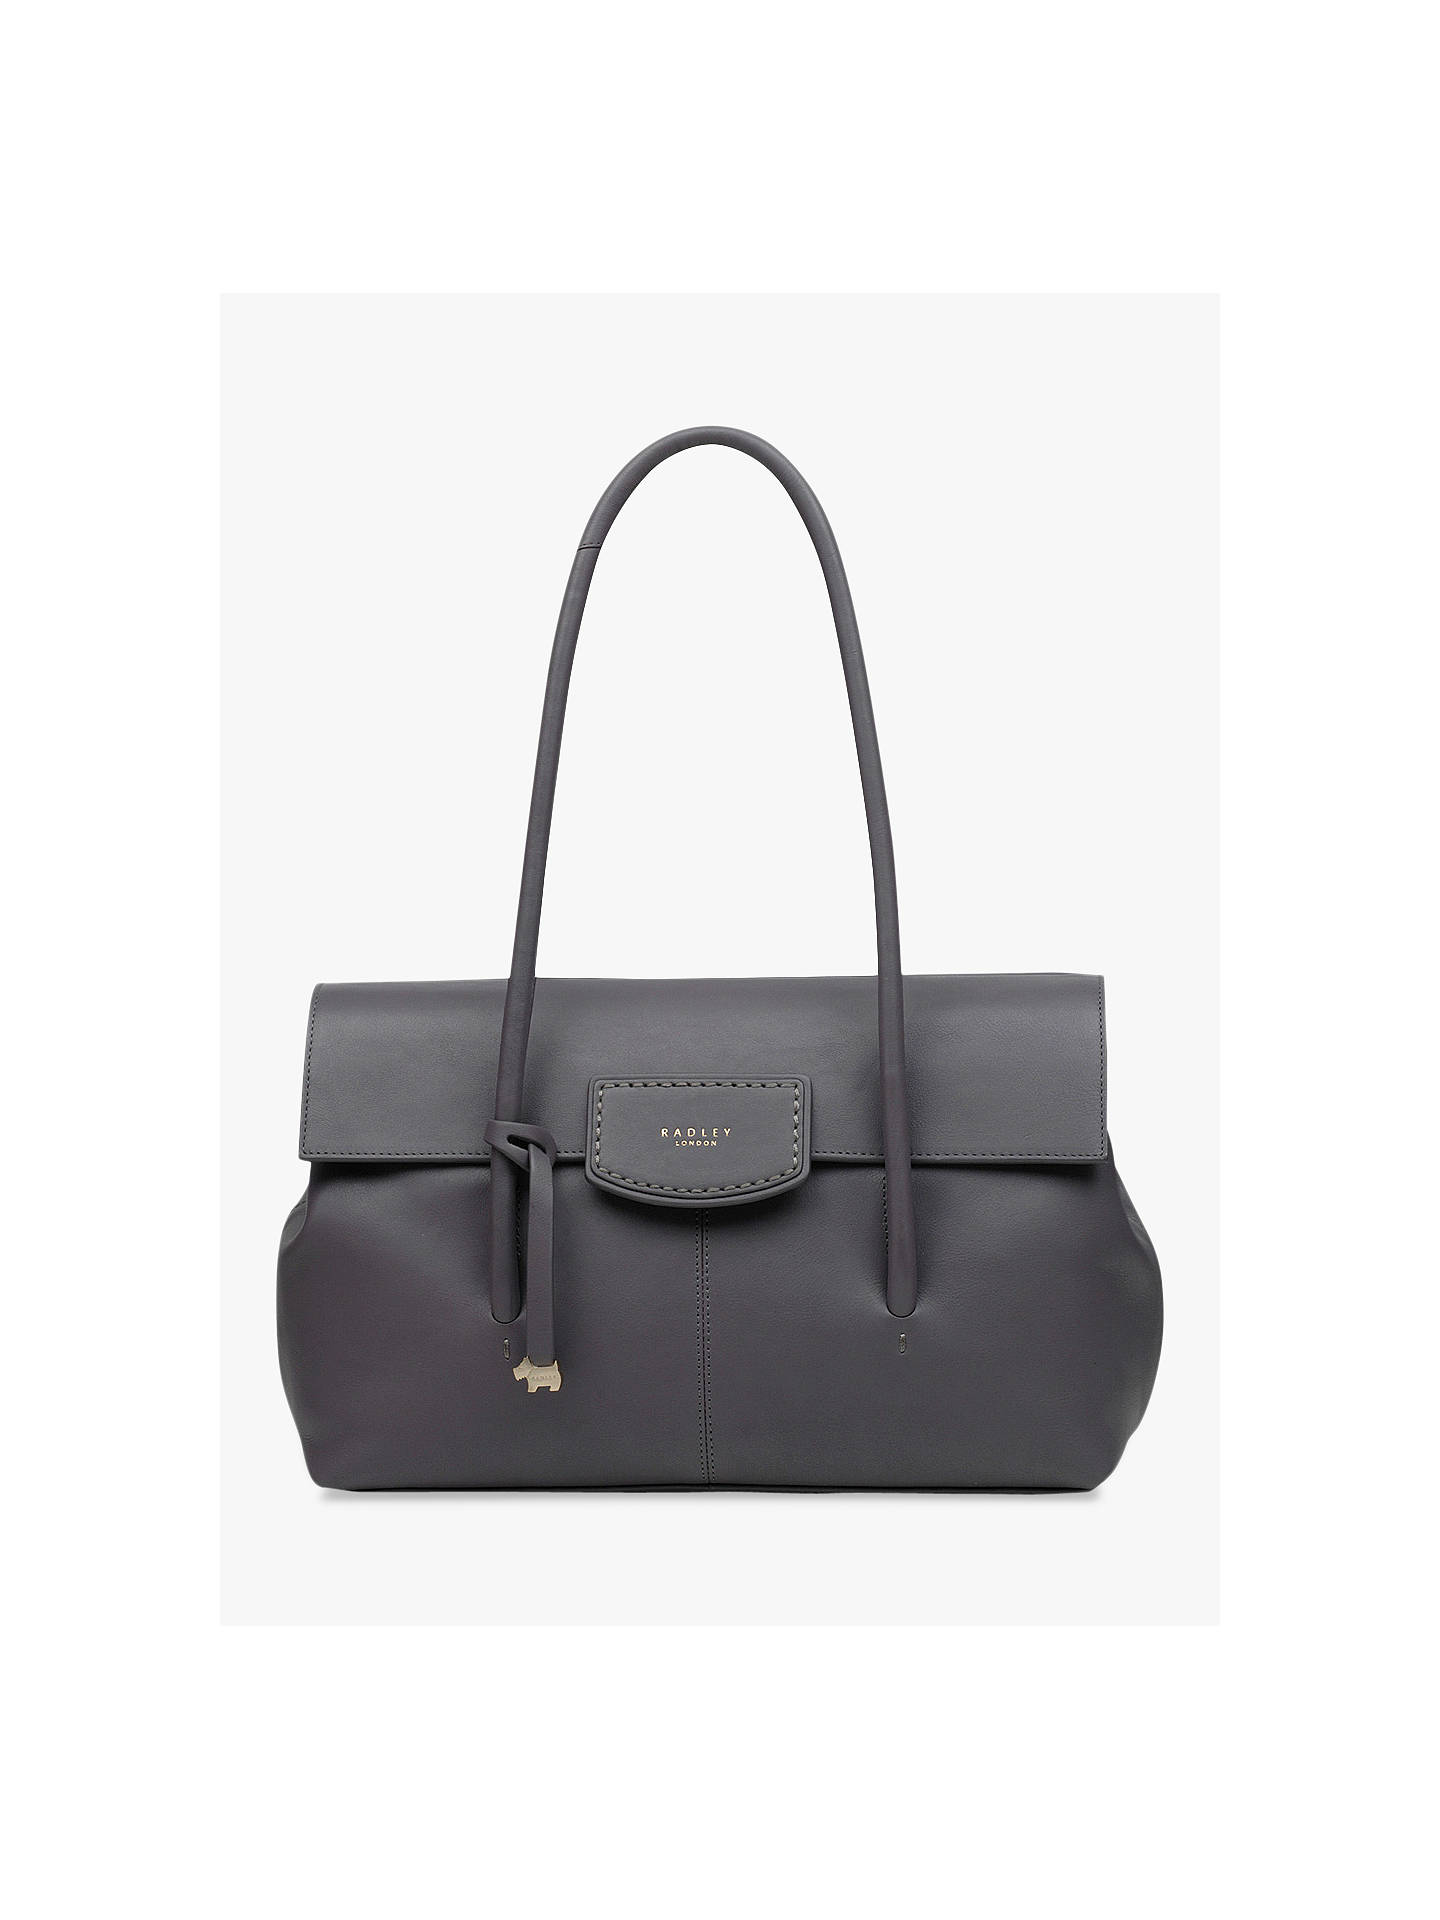 8717cbd2098ec Buy Radley Burnham Beaches Leather Large Shoulder Bag, Grey Online at  johnlewis.com ...